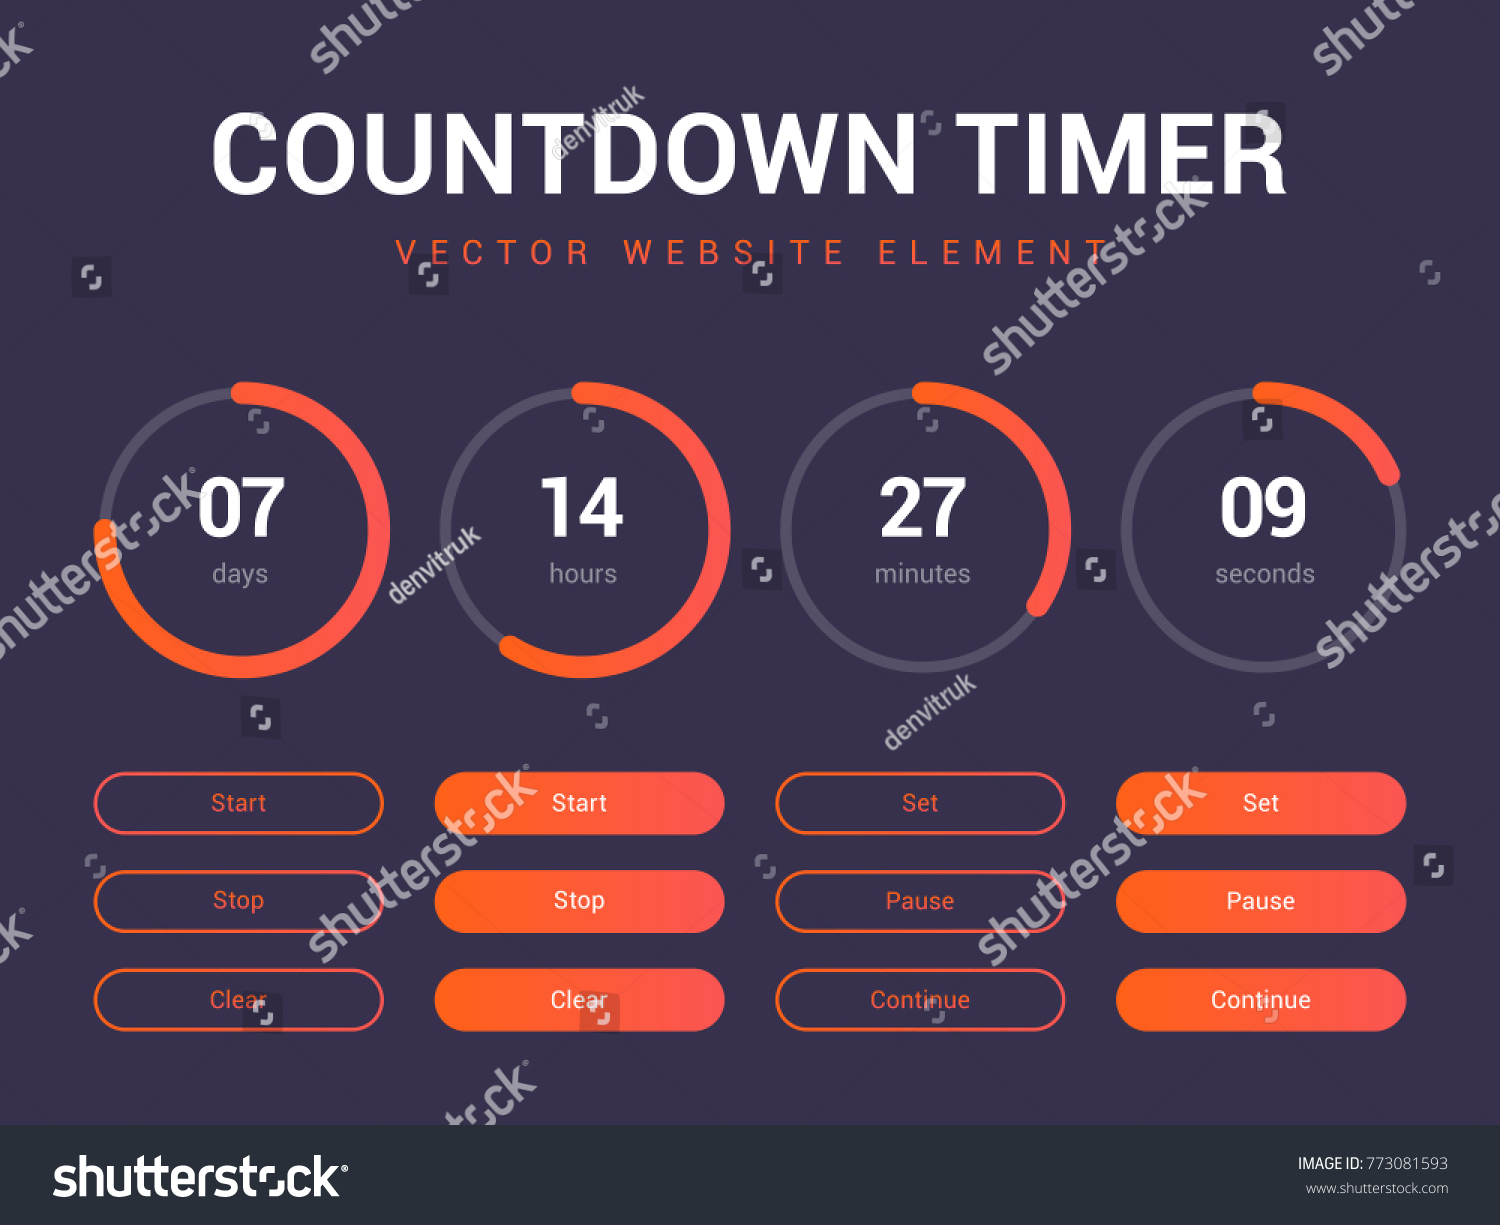 Countdown Timer Vector Website Element Buttons Stock Vector (Royalty ...